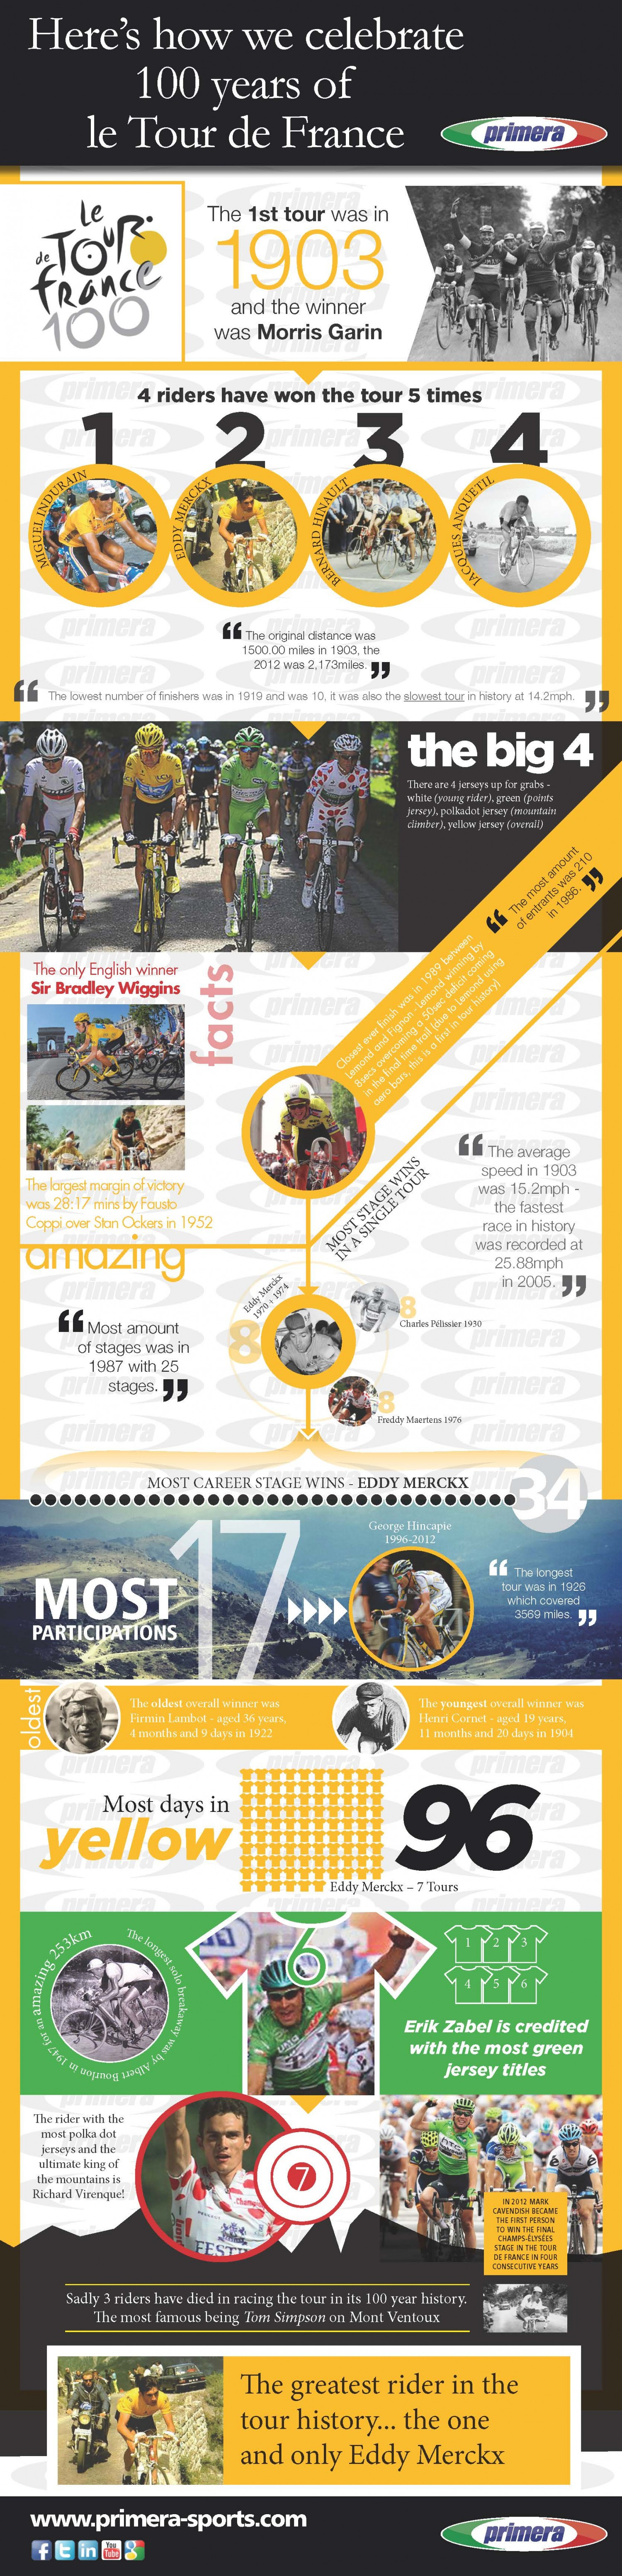 7. 100 years of the Tour De France - fun facts